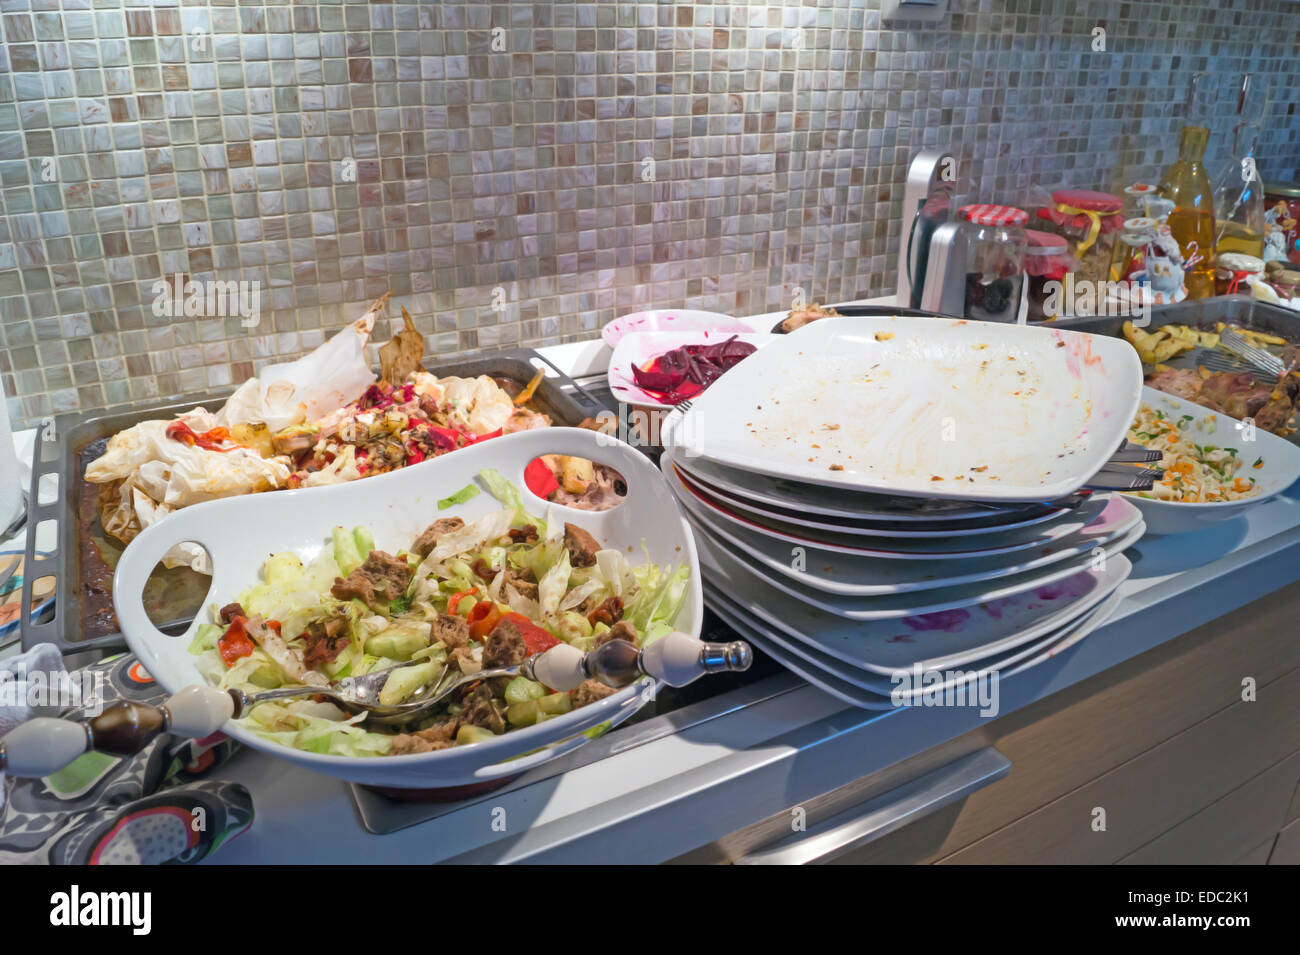 A mass of dirty, filthy dishes with food scraps waiting to be washed - Stock Image